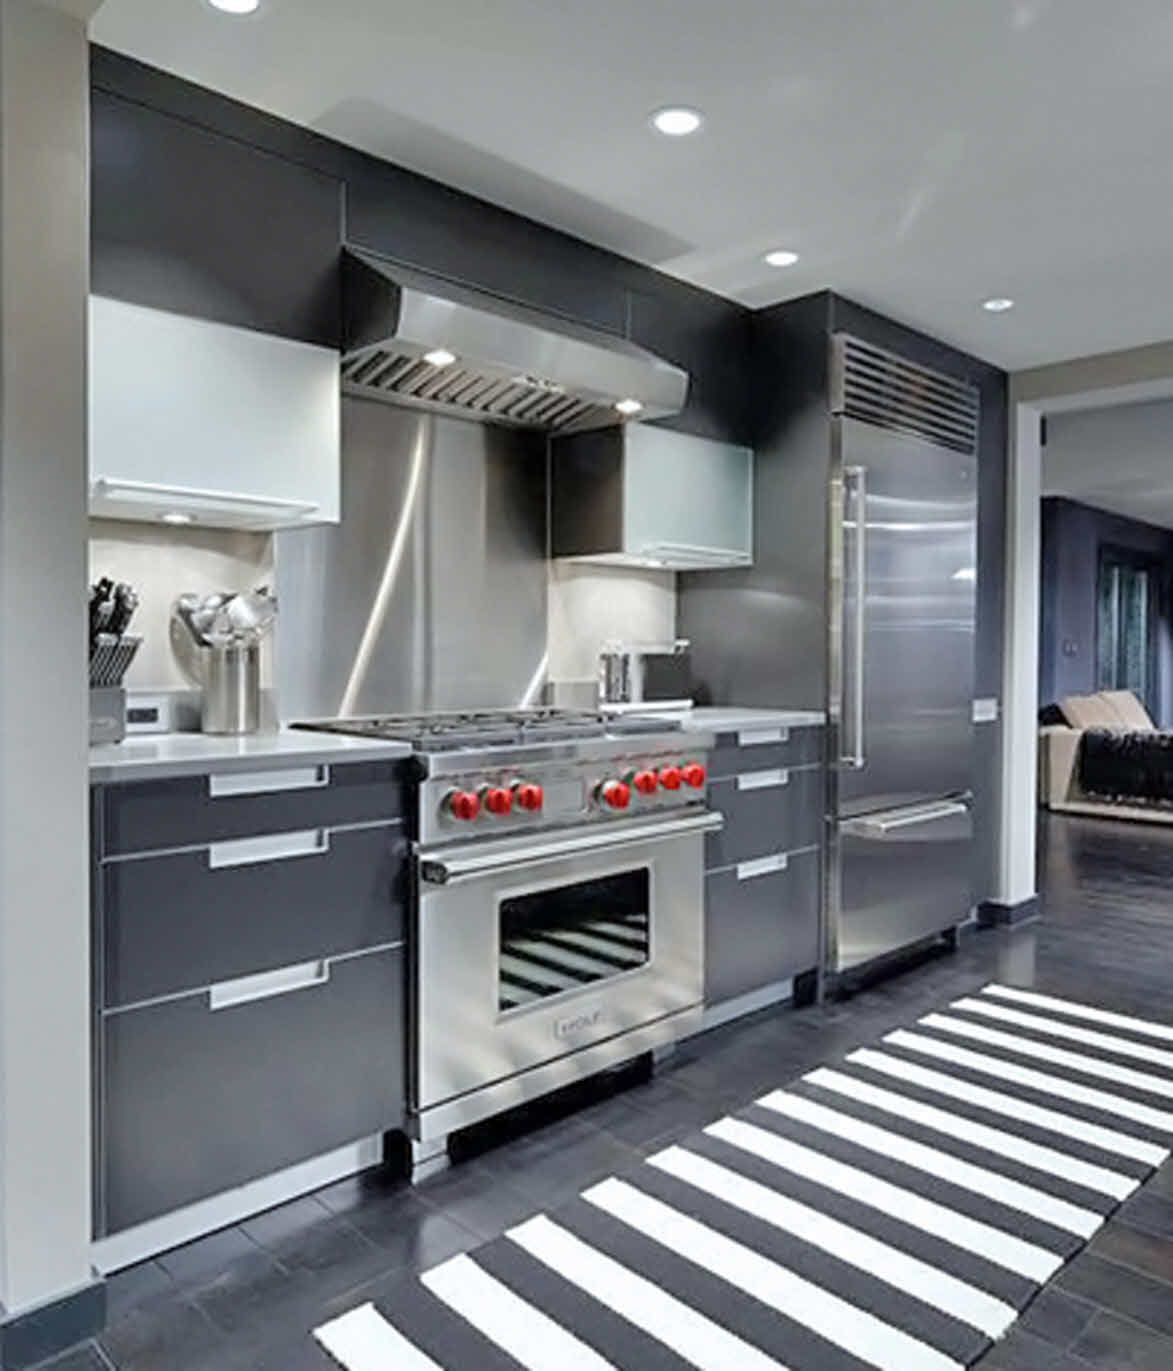 Poggenpohl Cabinetry And Sub Zero Wolf Appliances In This John Coulter Design From Poggenpohl Atlanta Kitchen Kitchen Solutions Kitchen Kitchen Inspirations